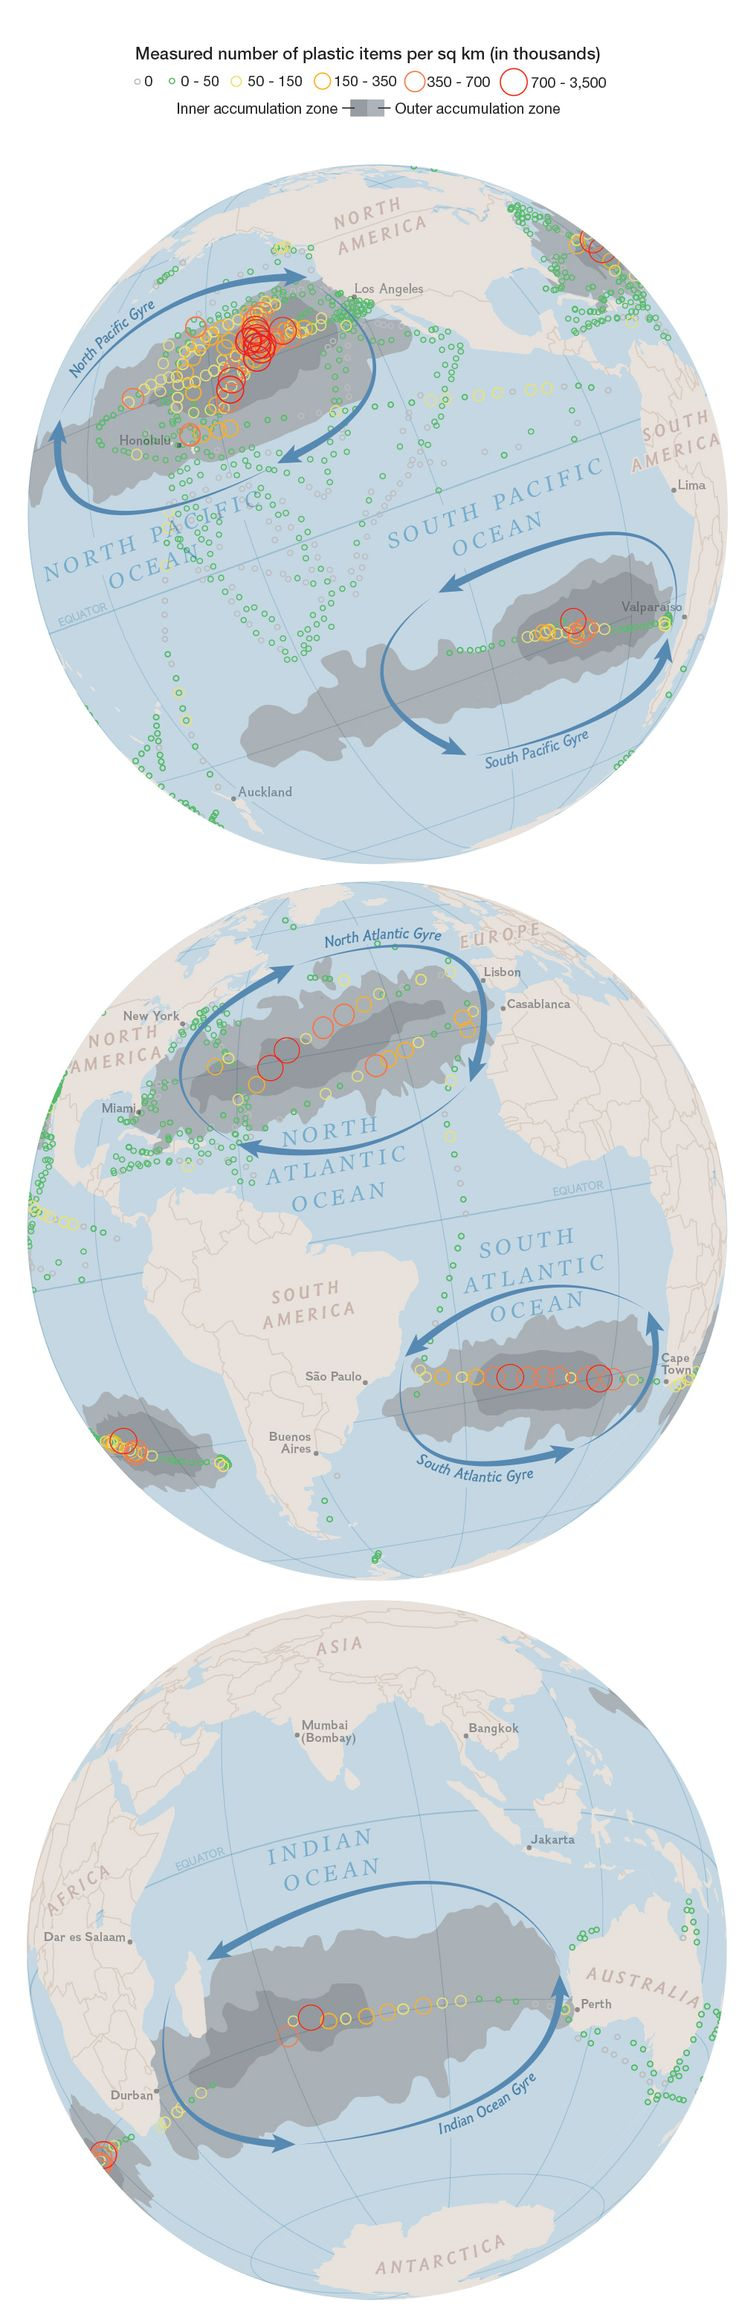 Plastic debris in the oceans, map by Jamie Hawk National Geographic #map #oceans #ngm